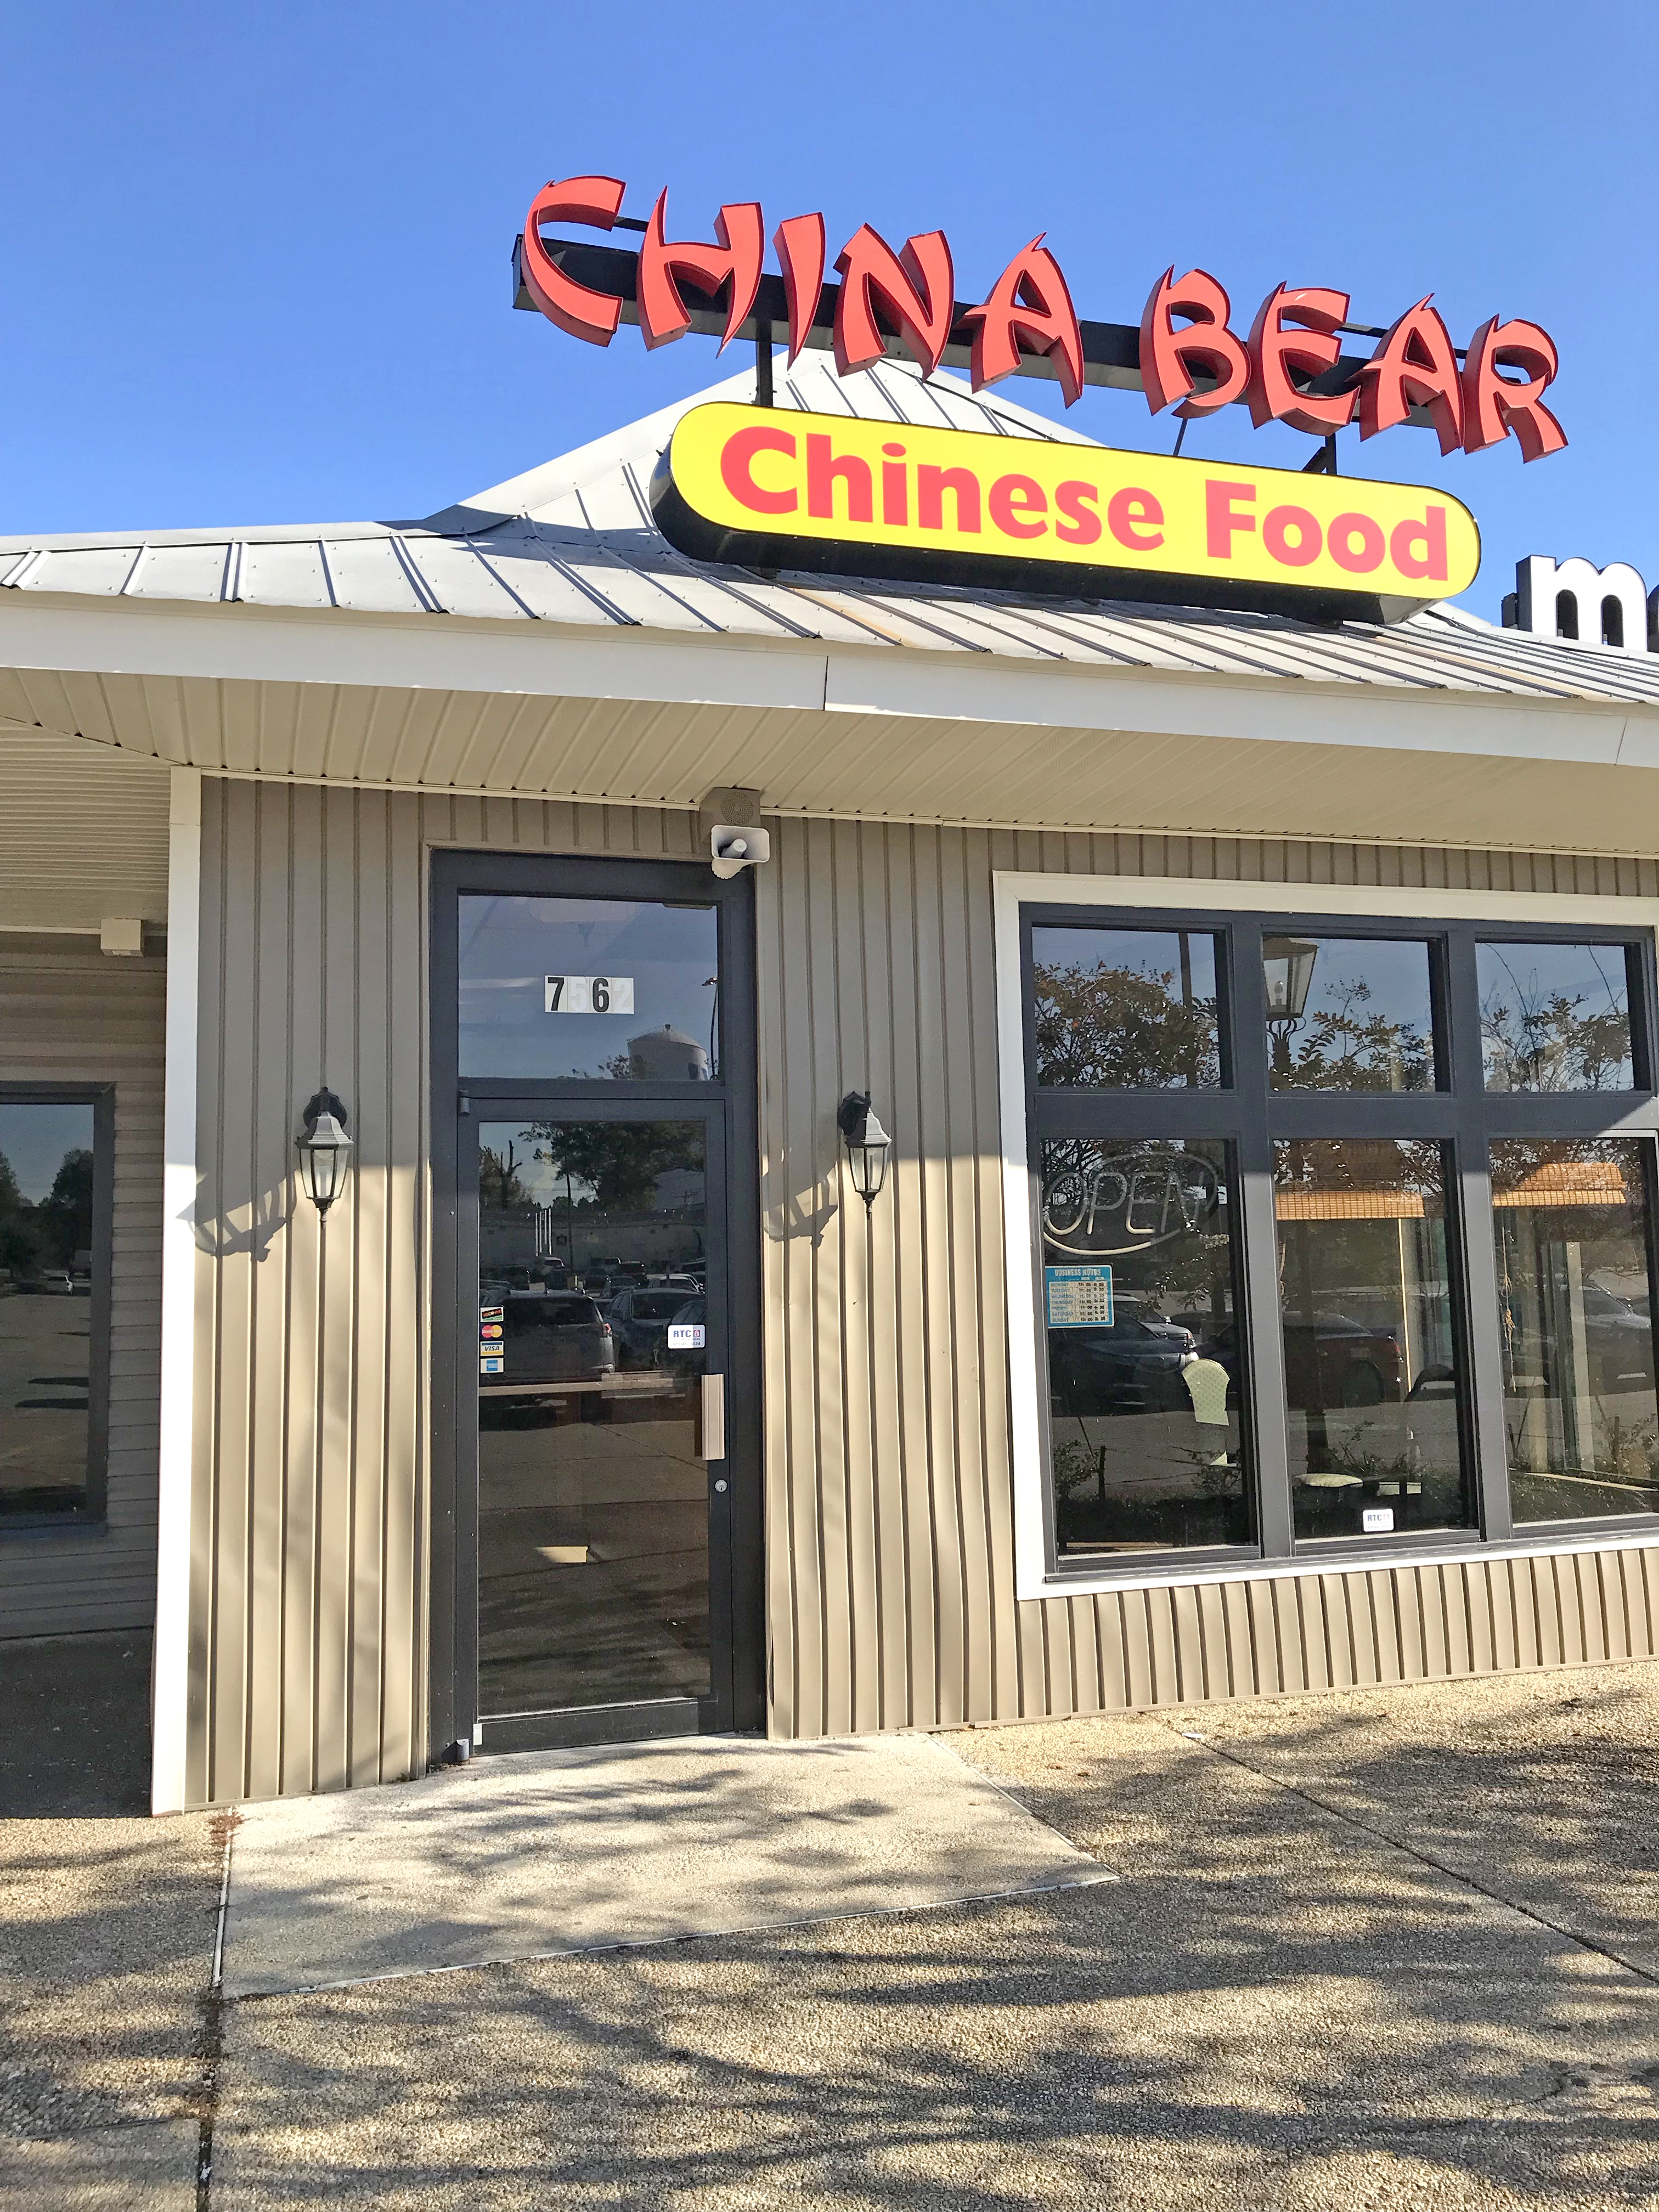 Surprising 5 Baton Rouge Restaurants With The Most Serious Food Safety Download Free Architecture Designs Embacsunscenecom